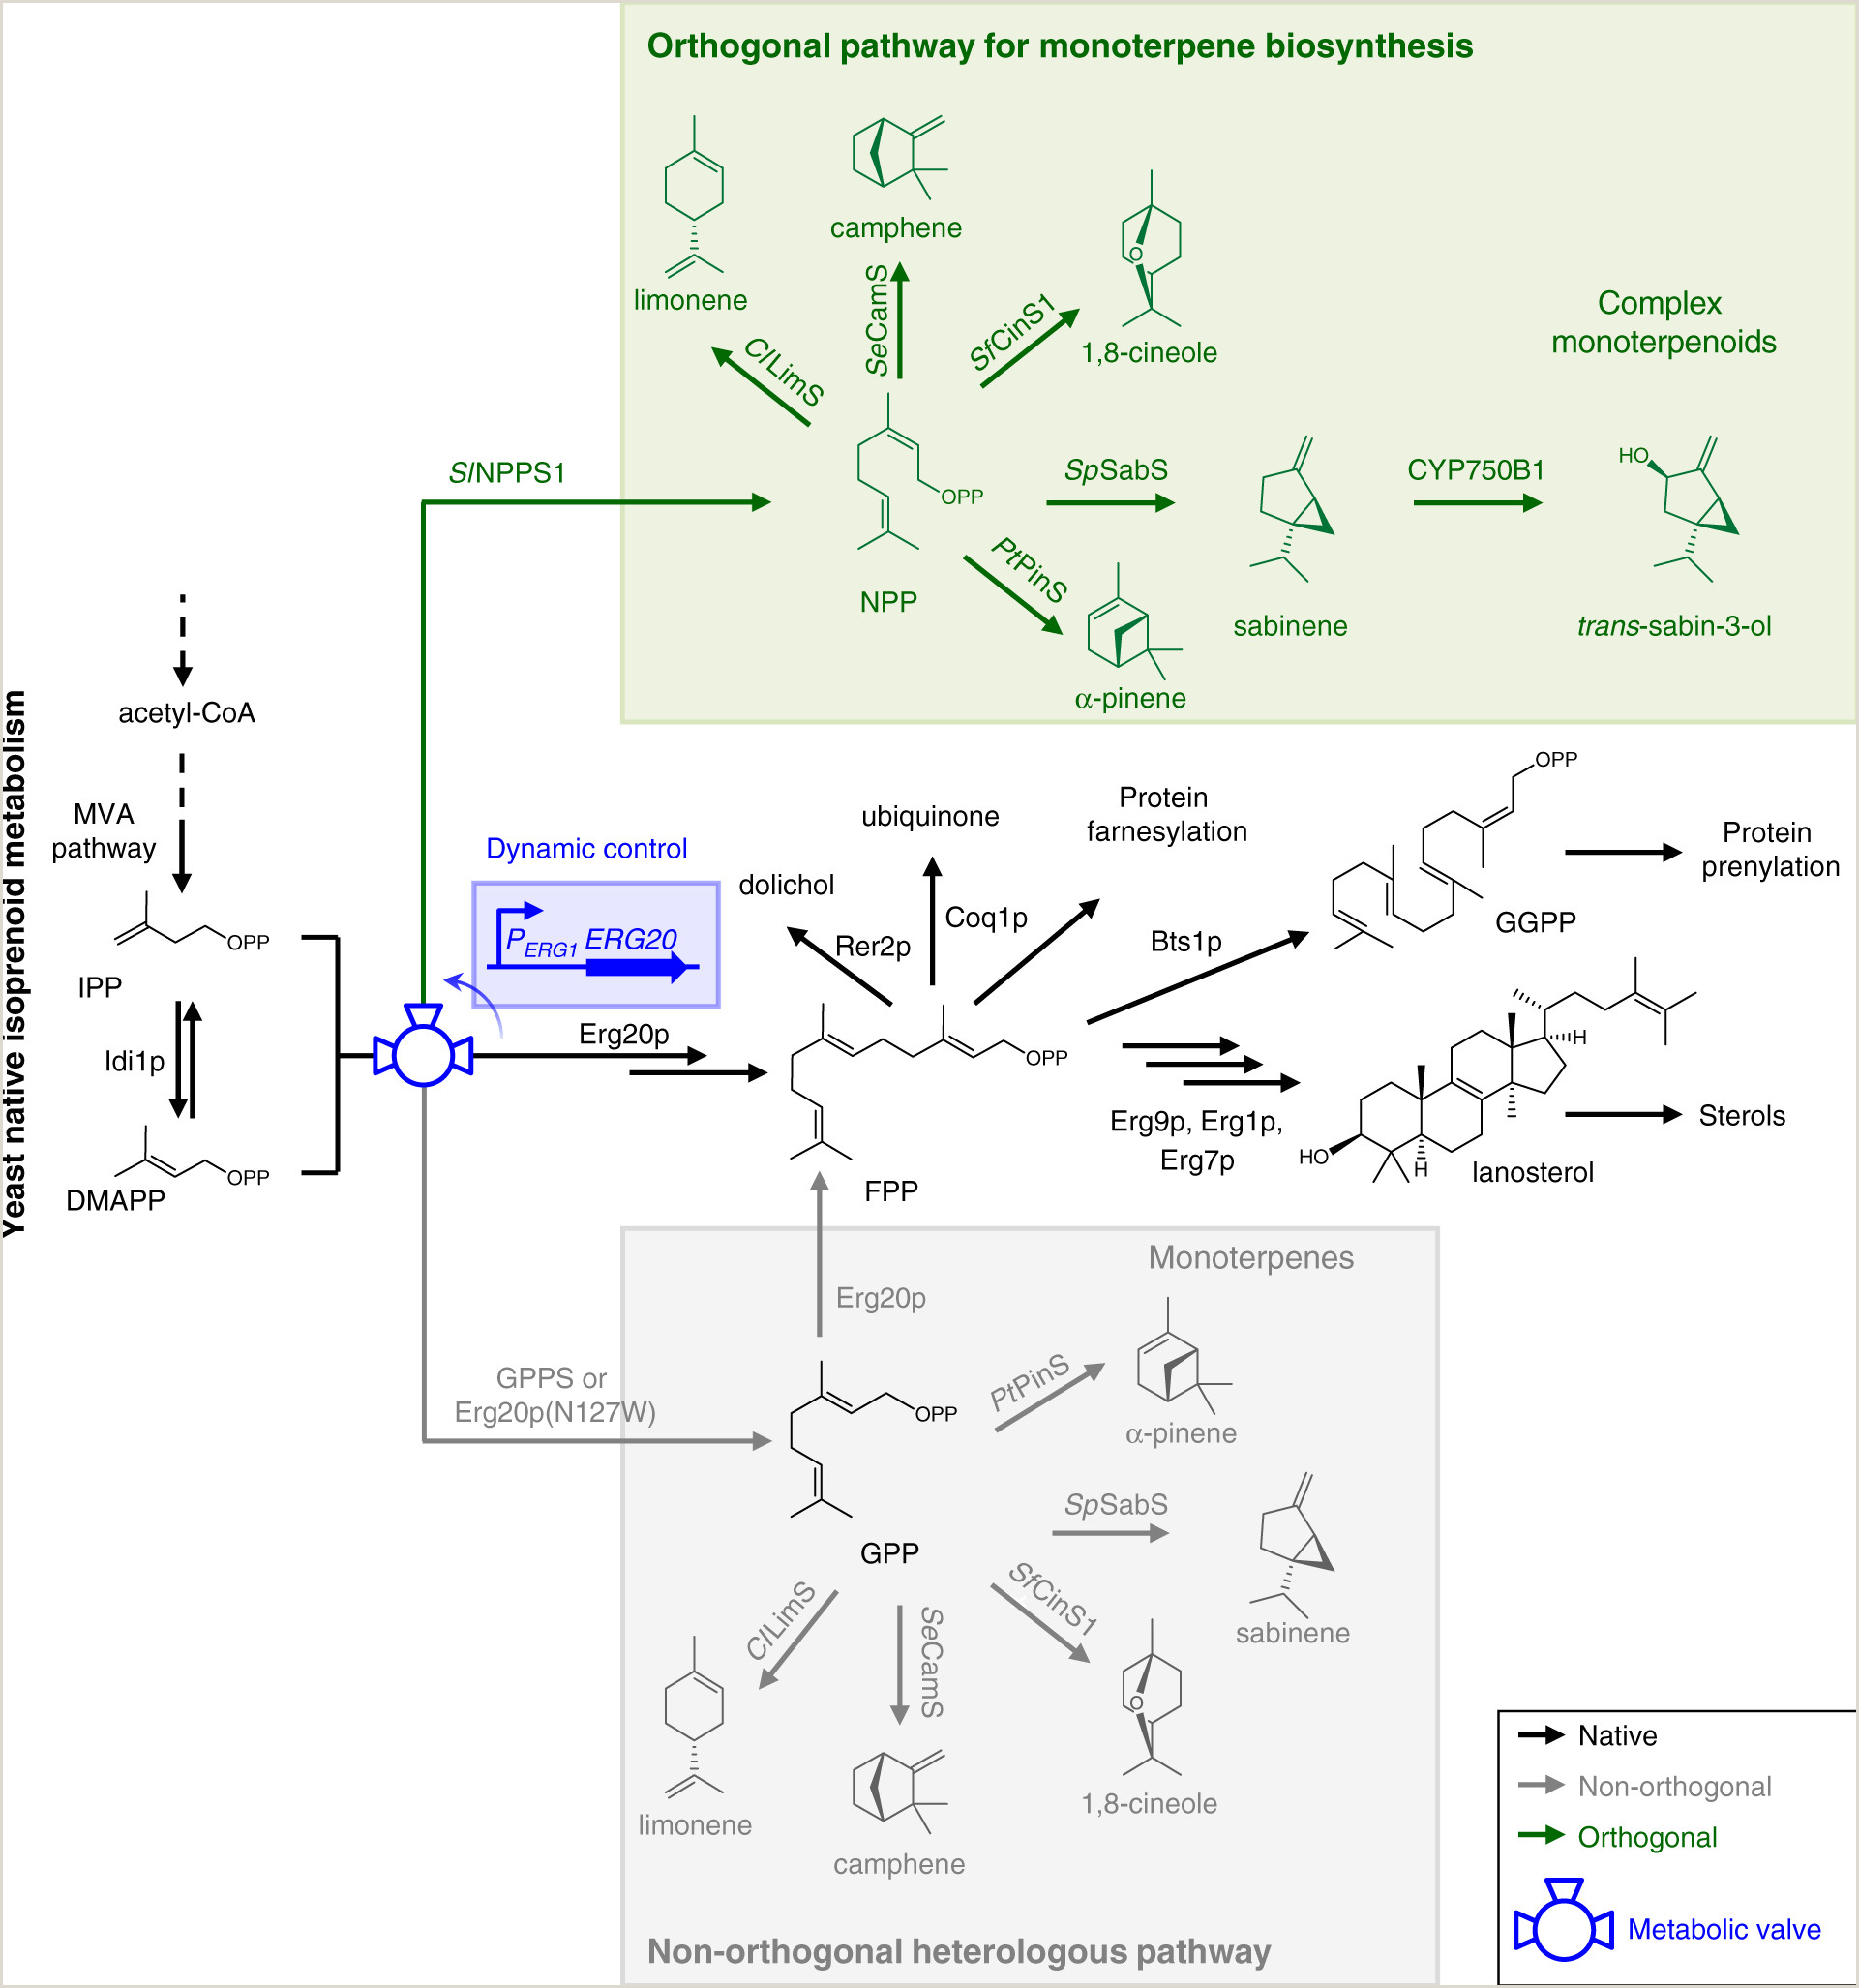 Select the Statement that Best Describes A Buffer orthogonal Monoterpenoid Biosynthesis In Yeast Constructed